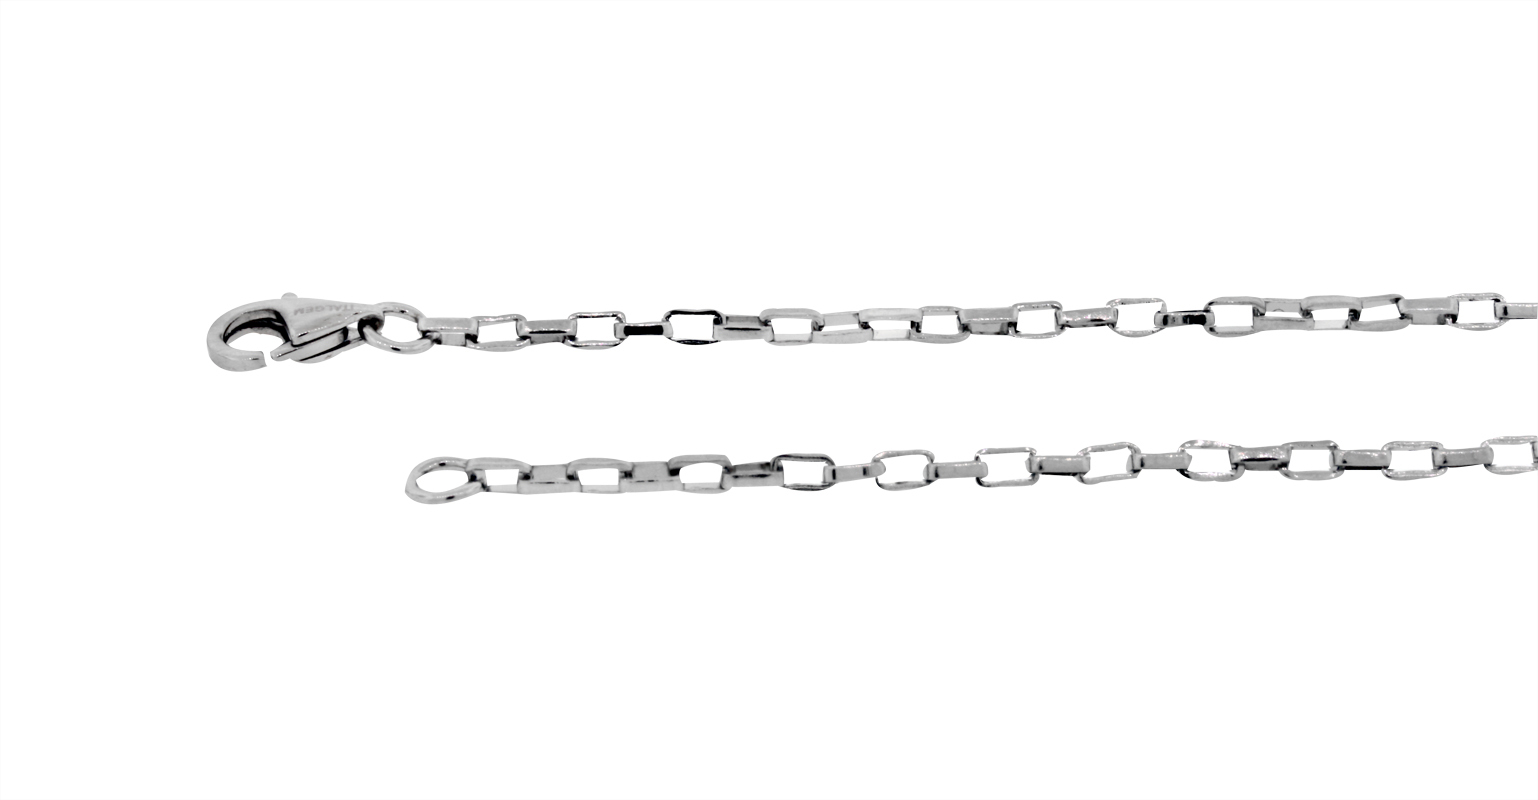 20'' 'Rollo' Style Chain - Stainless steel